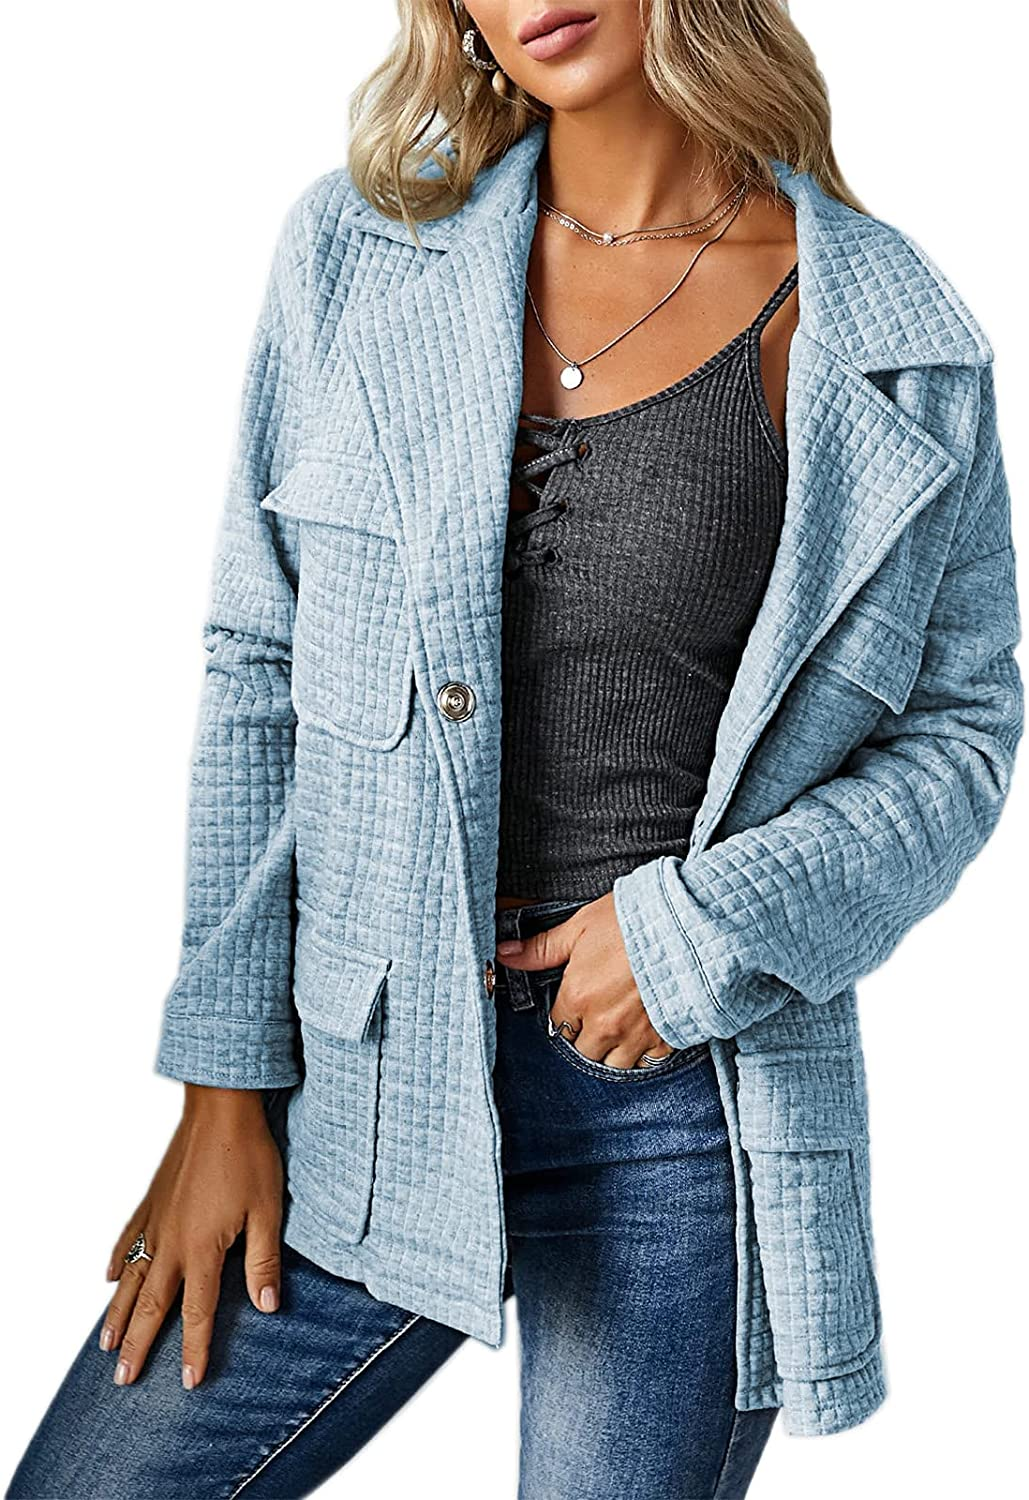 Womens Lightweight Quilted Jacket Snap Button Wrap Coat Casual Collared Warm Outwear with Pockets